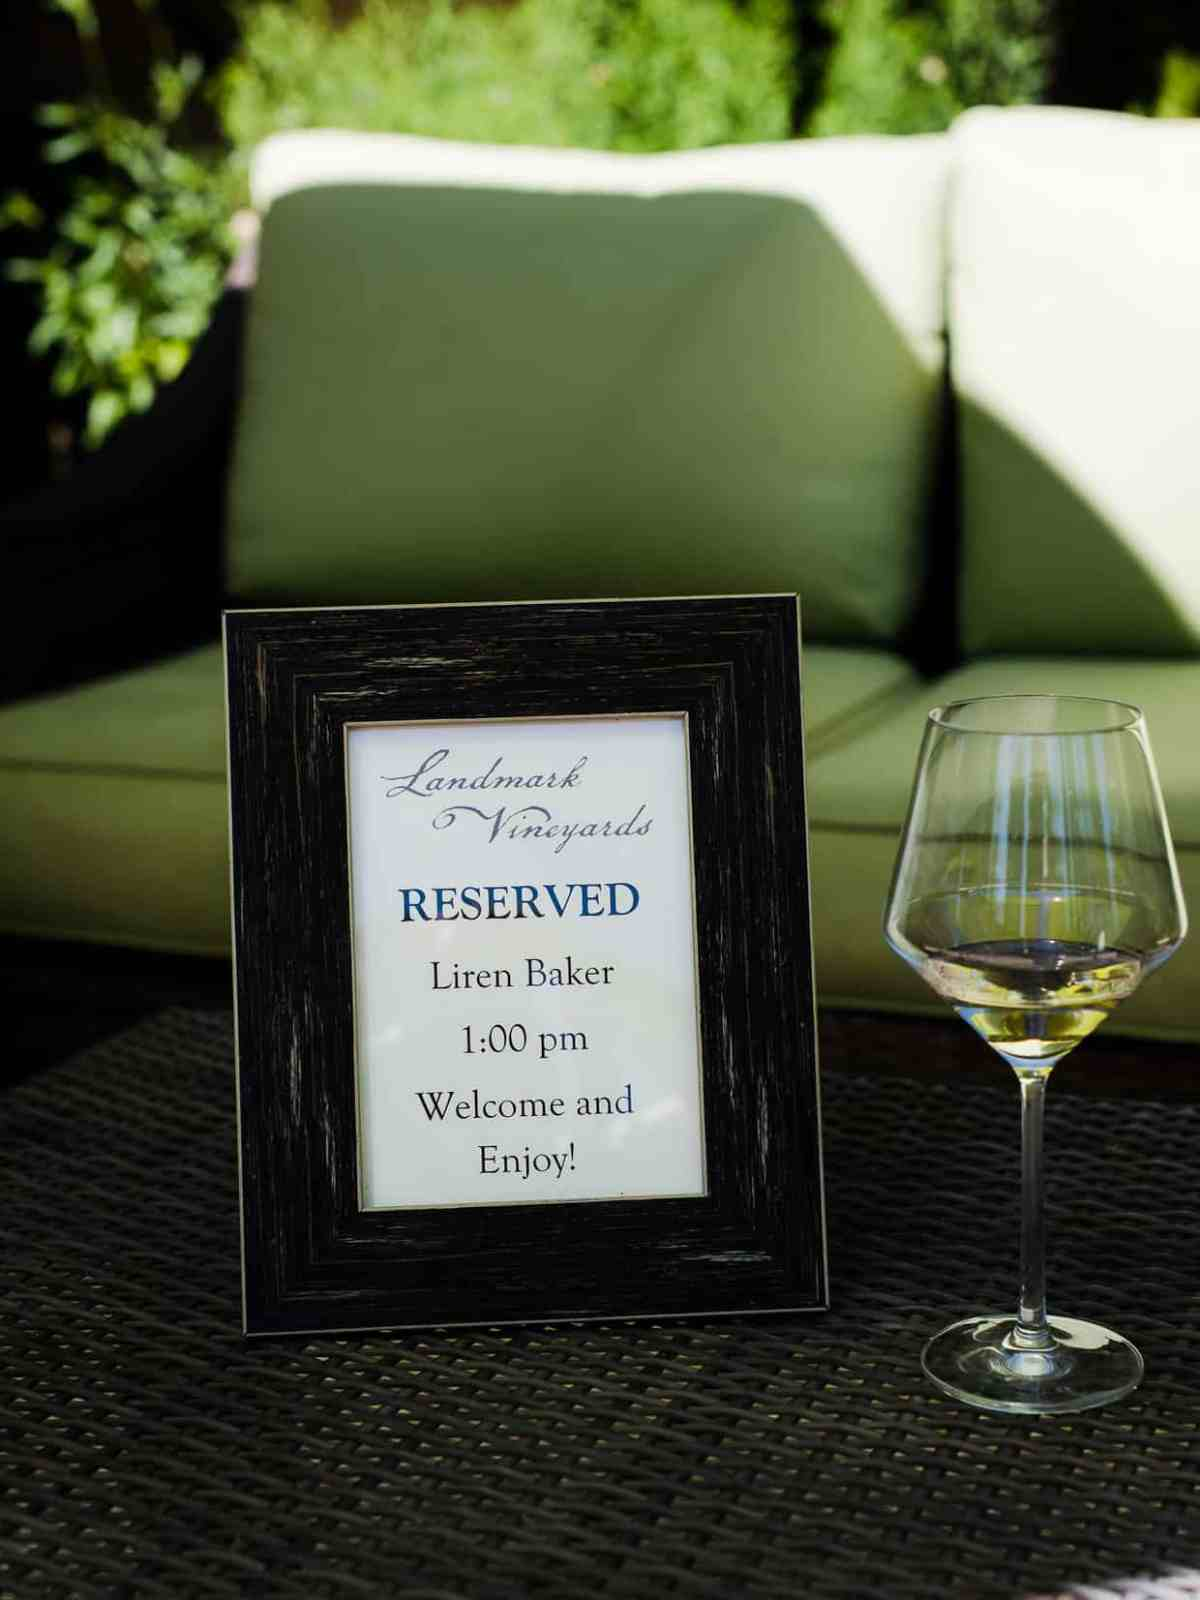 A small photo frame marking a reserved table at a wine tasting.